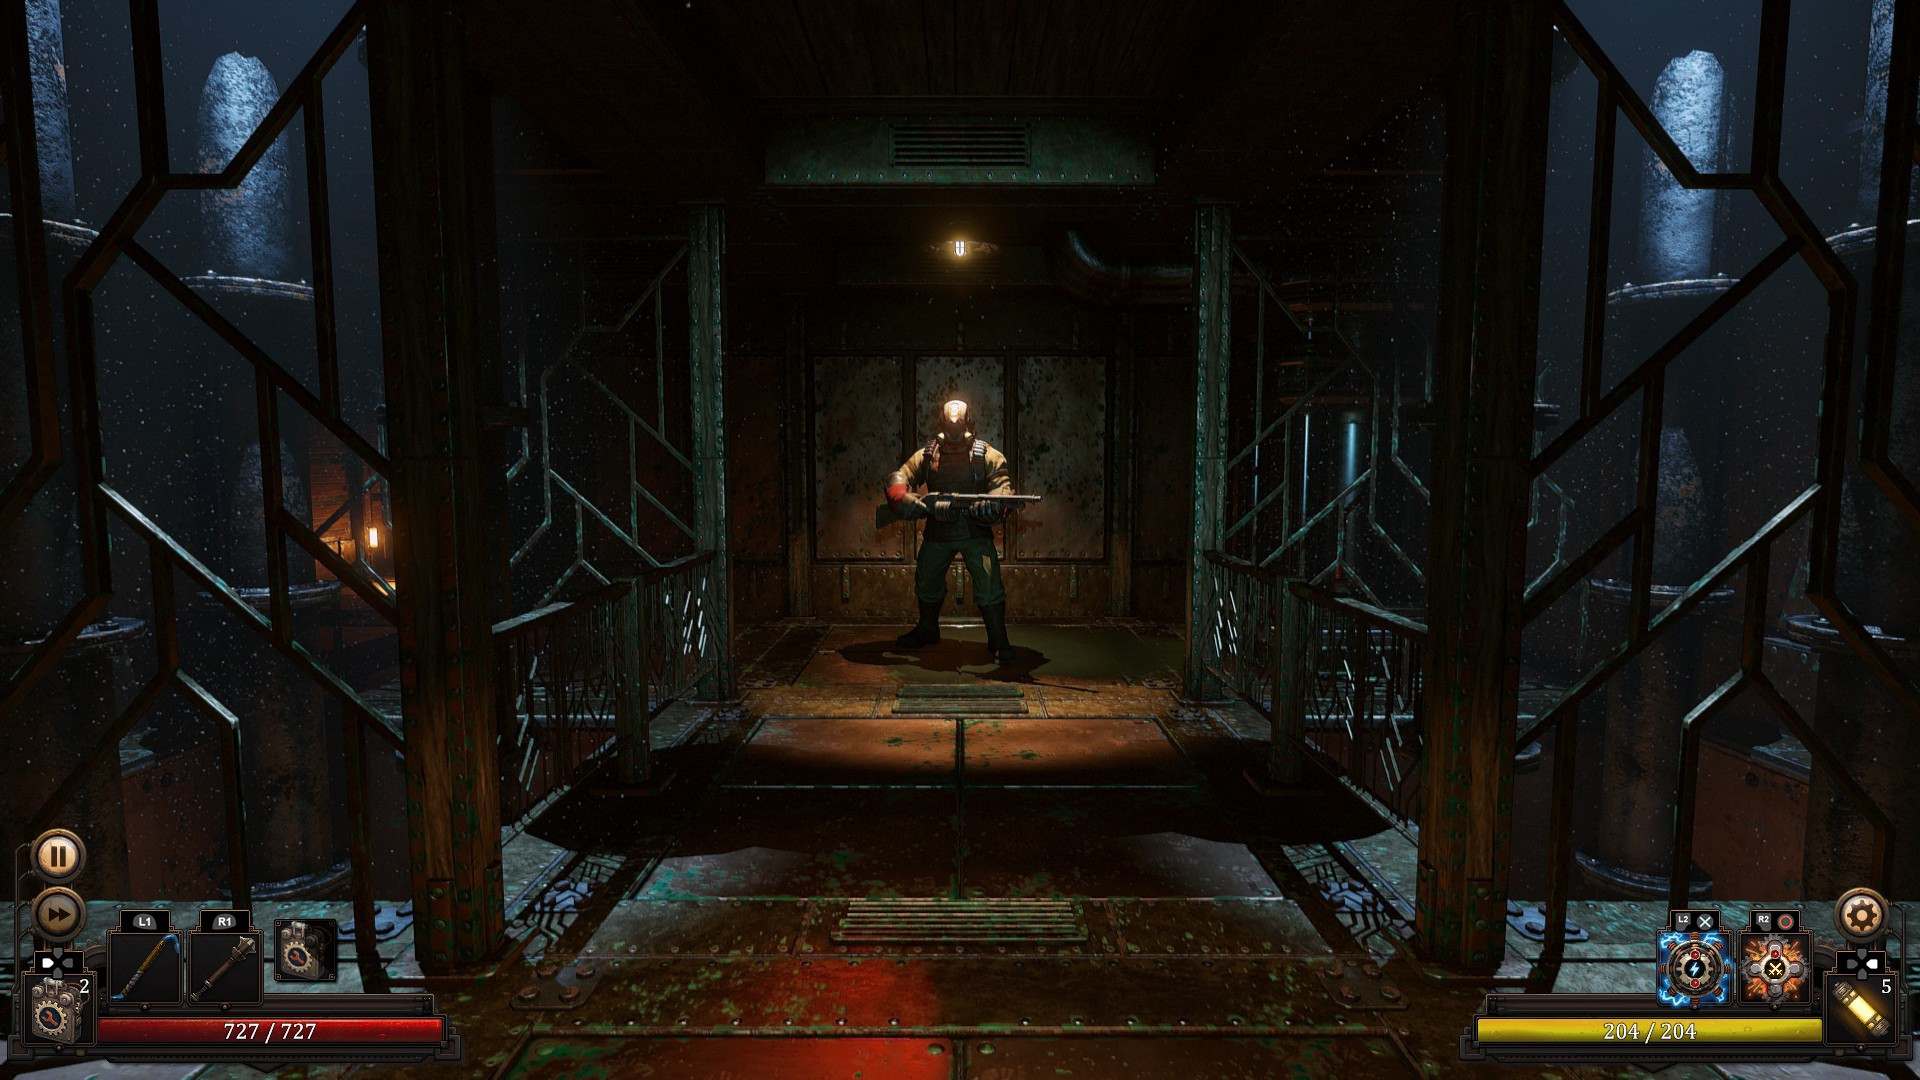 Steampunk Themed Dungeon Crawler Vaporum Releases this April